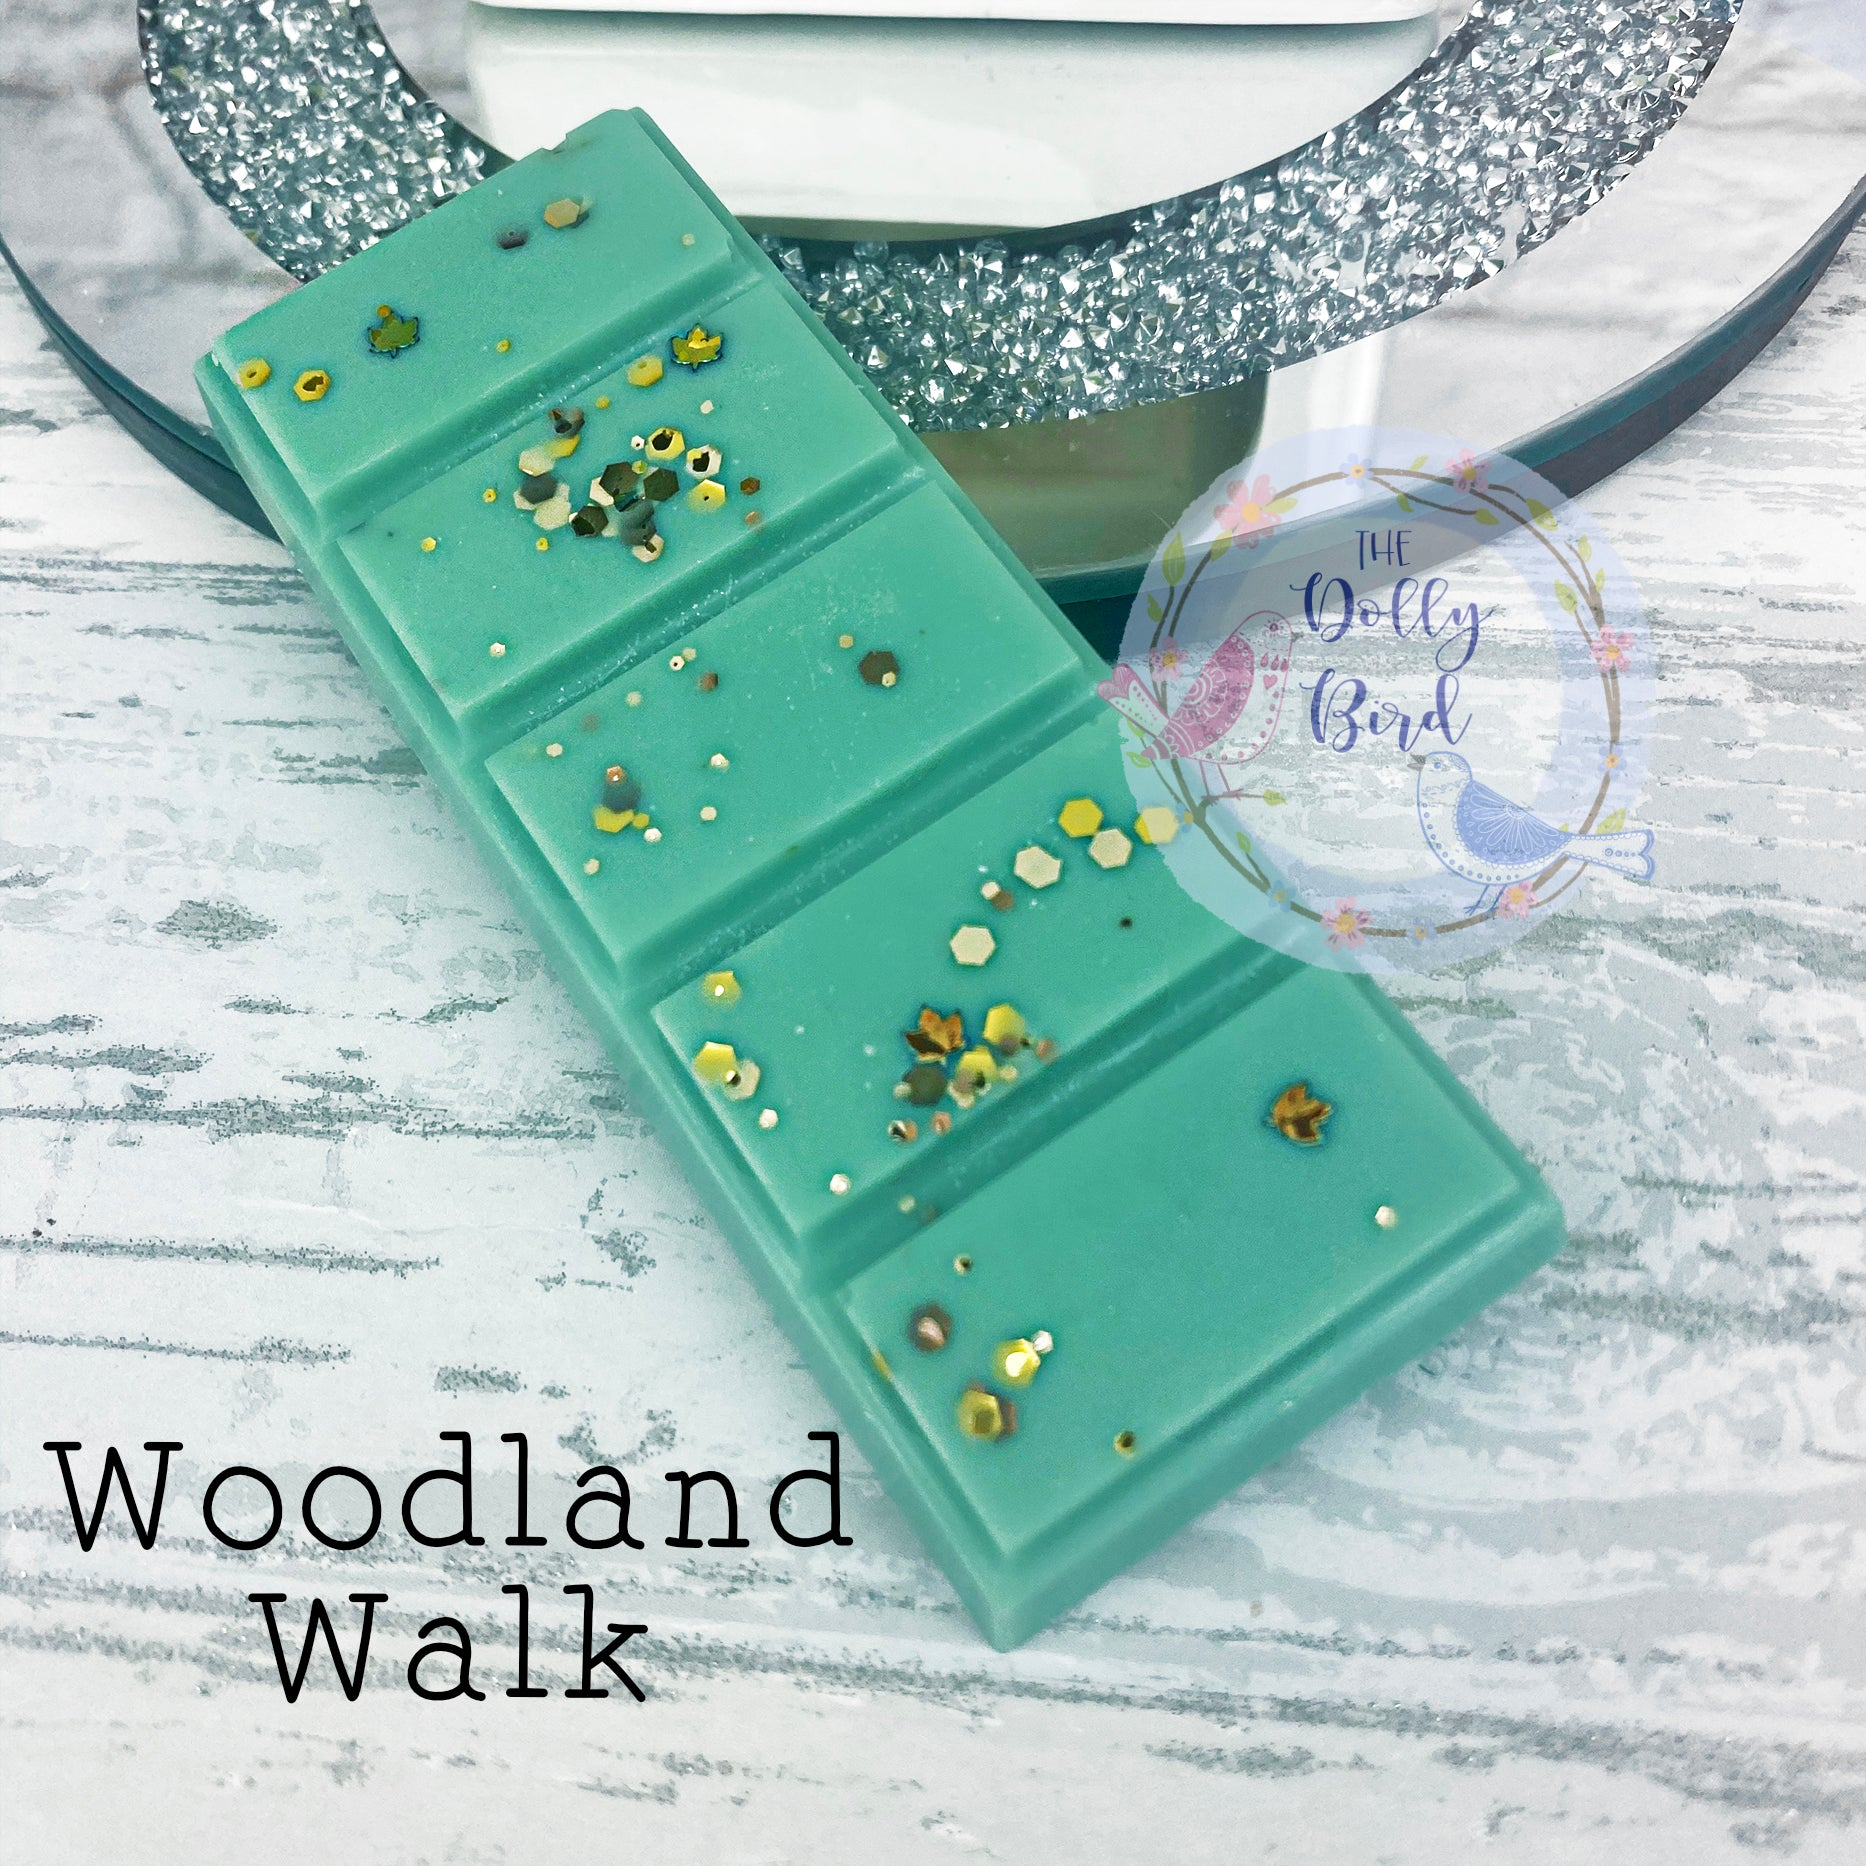 Woodland Walk Wax Melt Snap Bar, Herbal Scented Wax, Soy Wax Melts, Clean Scented Wax Melts, Fresh Scent Wax Melts, Musk Scented Wax Melts